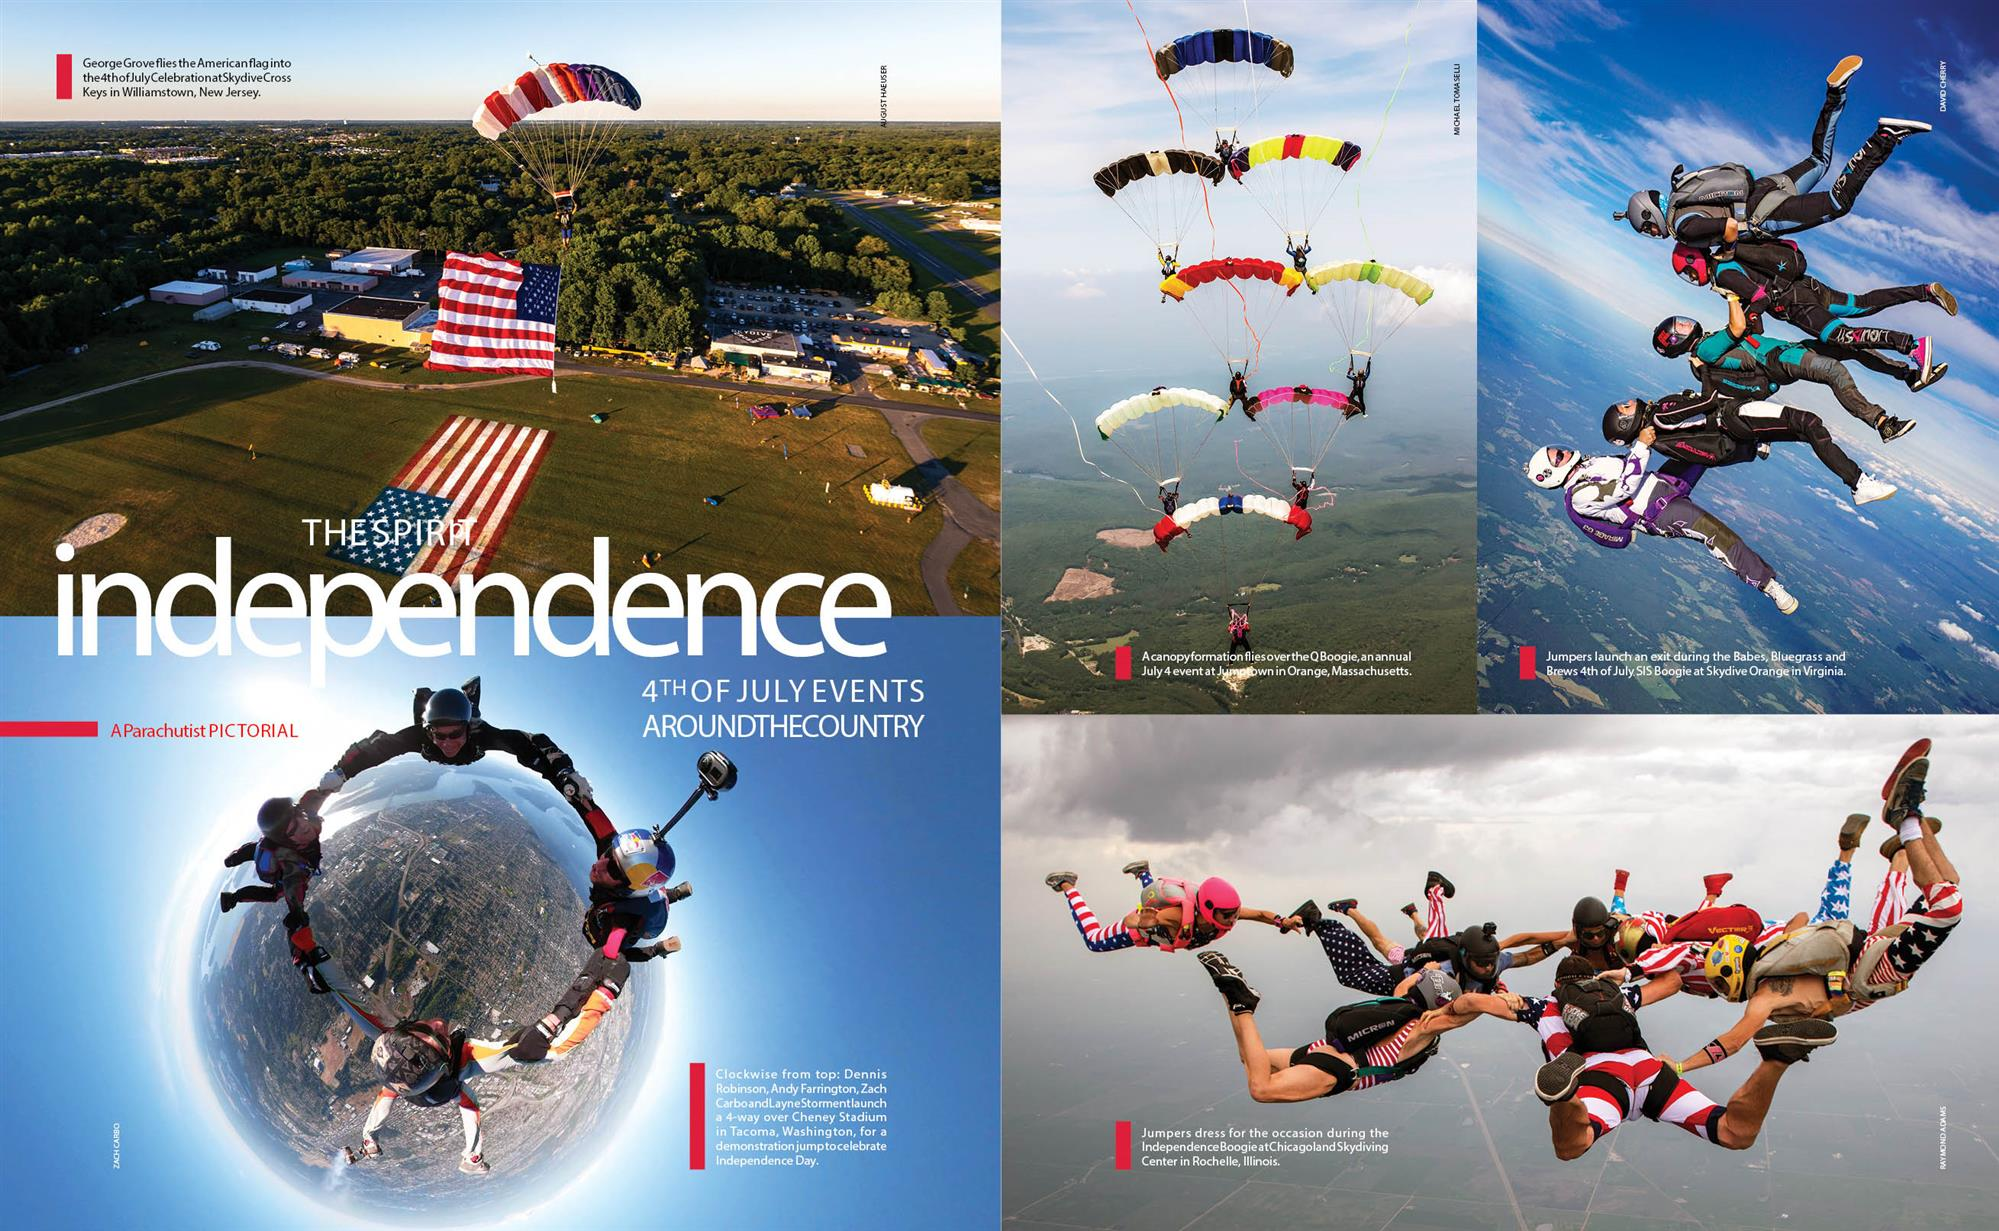 The Spirit of Independence--4th of July Events Around the